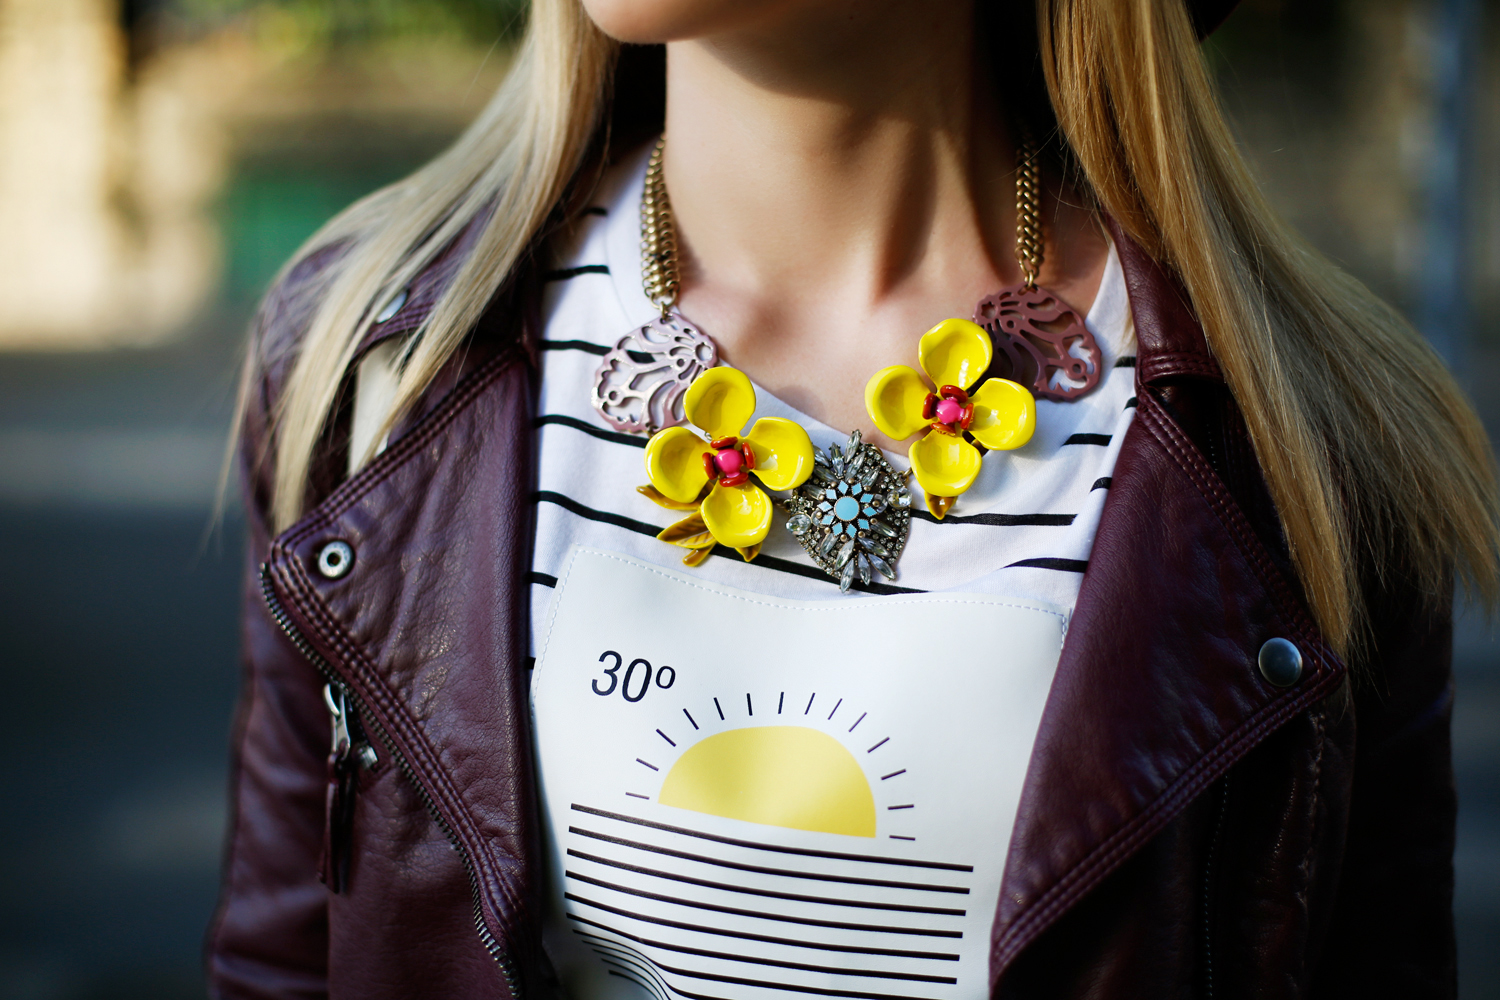 Amazing lush colors of Happiness Boutique necklace